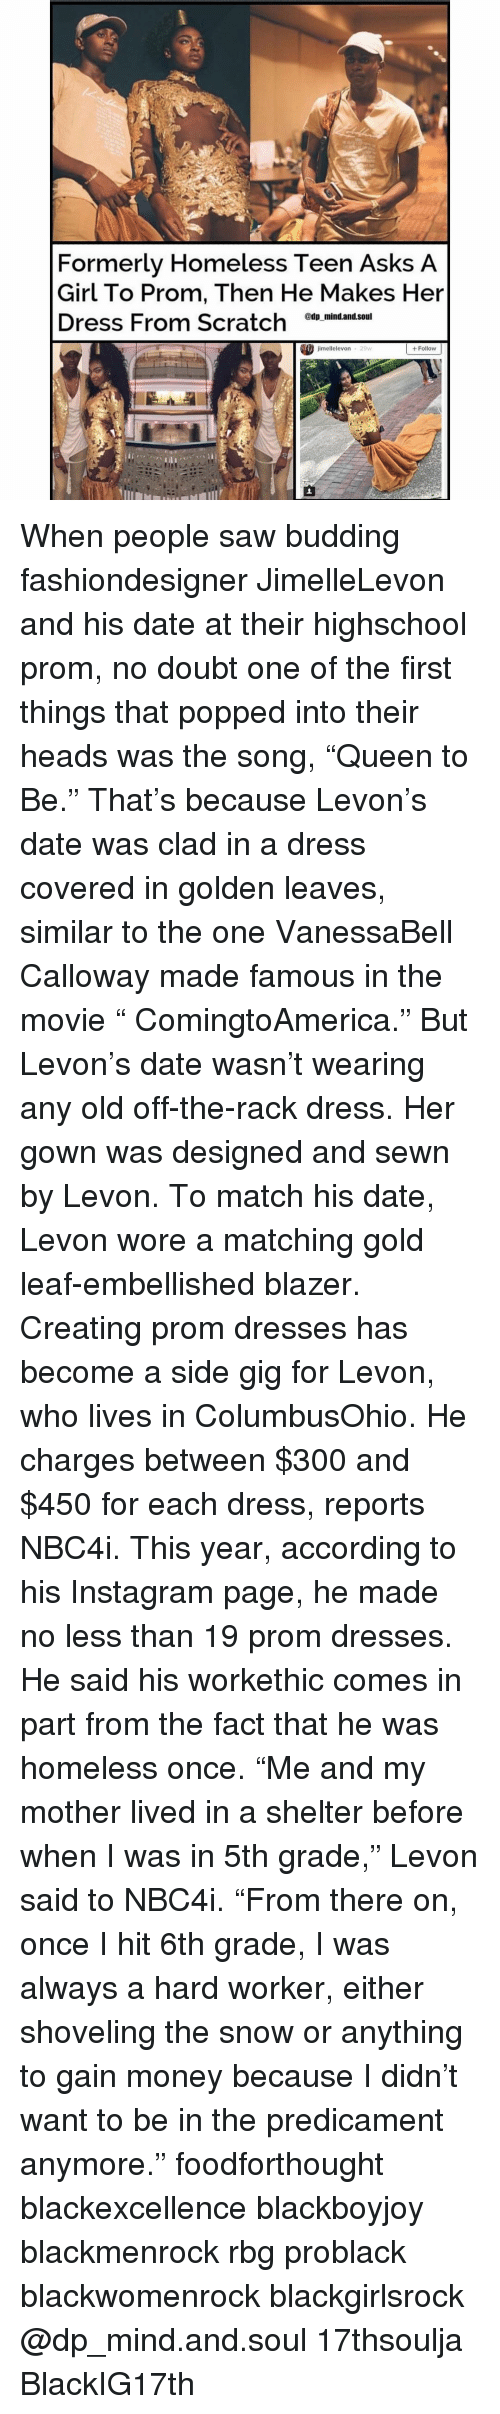 "Homeless, Memes, and Pop: Formerly Homeless Teen Asks A  Girl To Prom, Then He Makes Her  Dress From Scratch  @tip mind.and.Soul  jimellelevon  Follow  29W When people saw budding fashiondesigner JimelleLevon and his date at their highschool prom, no doubt one of the first things that popped into their heads was the song, ""Queen to Be."" That's because Levon's date was clad in a dress covered in golden leaves, similar to the one VanessaBell Calloway made famous in the movie "" ComingtoAmerica."" But Levon's date wasn't wearing any old off-the-rack dress. Her gown was designed and sewn by Levon. To match his date, Levon wore a matching gold leaf-embellished blazer. Creating prom dresses has become a side gig for Levon, who lives in ColumbusOhio. He charges between $300 and $450 for each dress, reports NBC4i. This year, according to his Instagram page, he made no less than 19 prom dresses. He said his workethic comes in part from the fact that he was homeless once. ""Me and my mother lived in a shelter before when I was in 5th grade,"" Levon said to NBC4i. ""From there on, once I hit 6th grade, I was always a hard worker, either shoveling the snow or anything to gain money because I didn't want to be in the predicament anymore."" foodforthought blackexcellence blackboyjoy blackmenrock rbg problack blackwomenrock blackgirlsrock @dp_mind.and.soul 17thsoulja BlackIG17th"